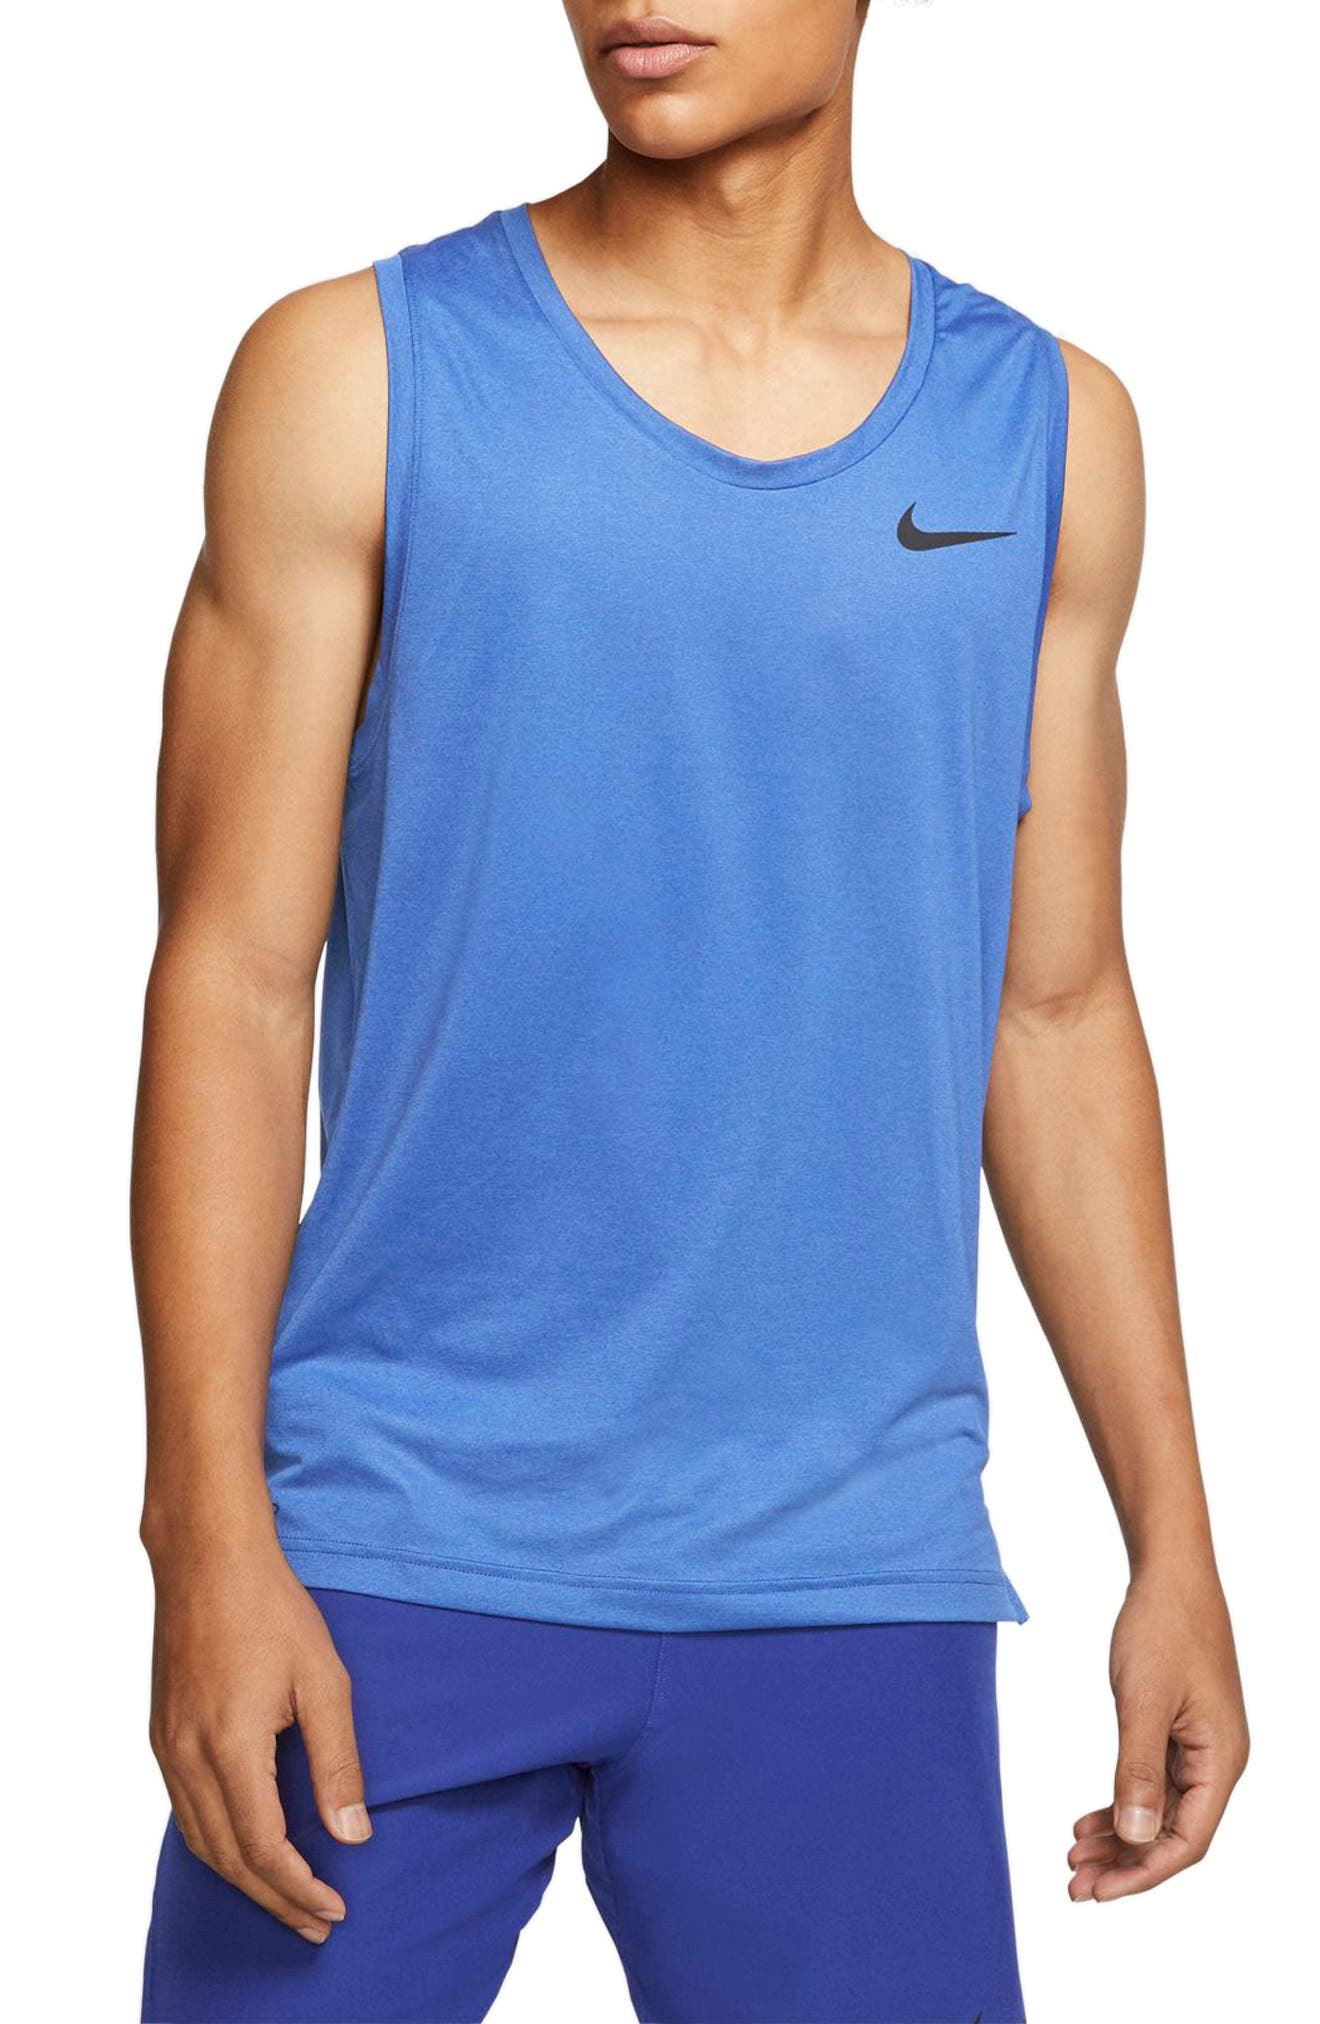 Men's Sleeveless T Shirts, Tank Tops, & Graphic Tees Nordstrom  Nordstrom